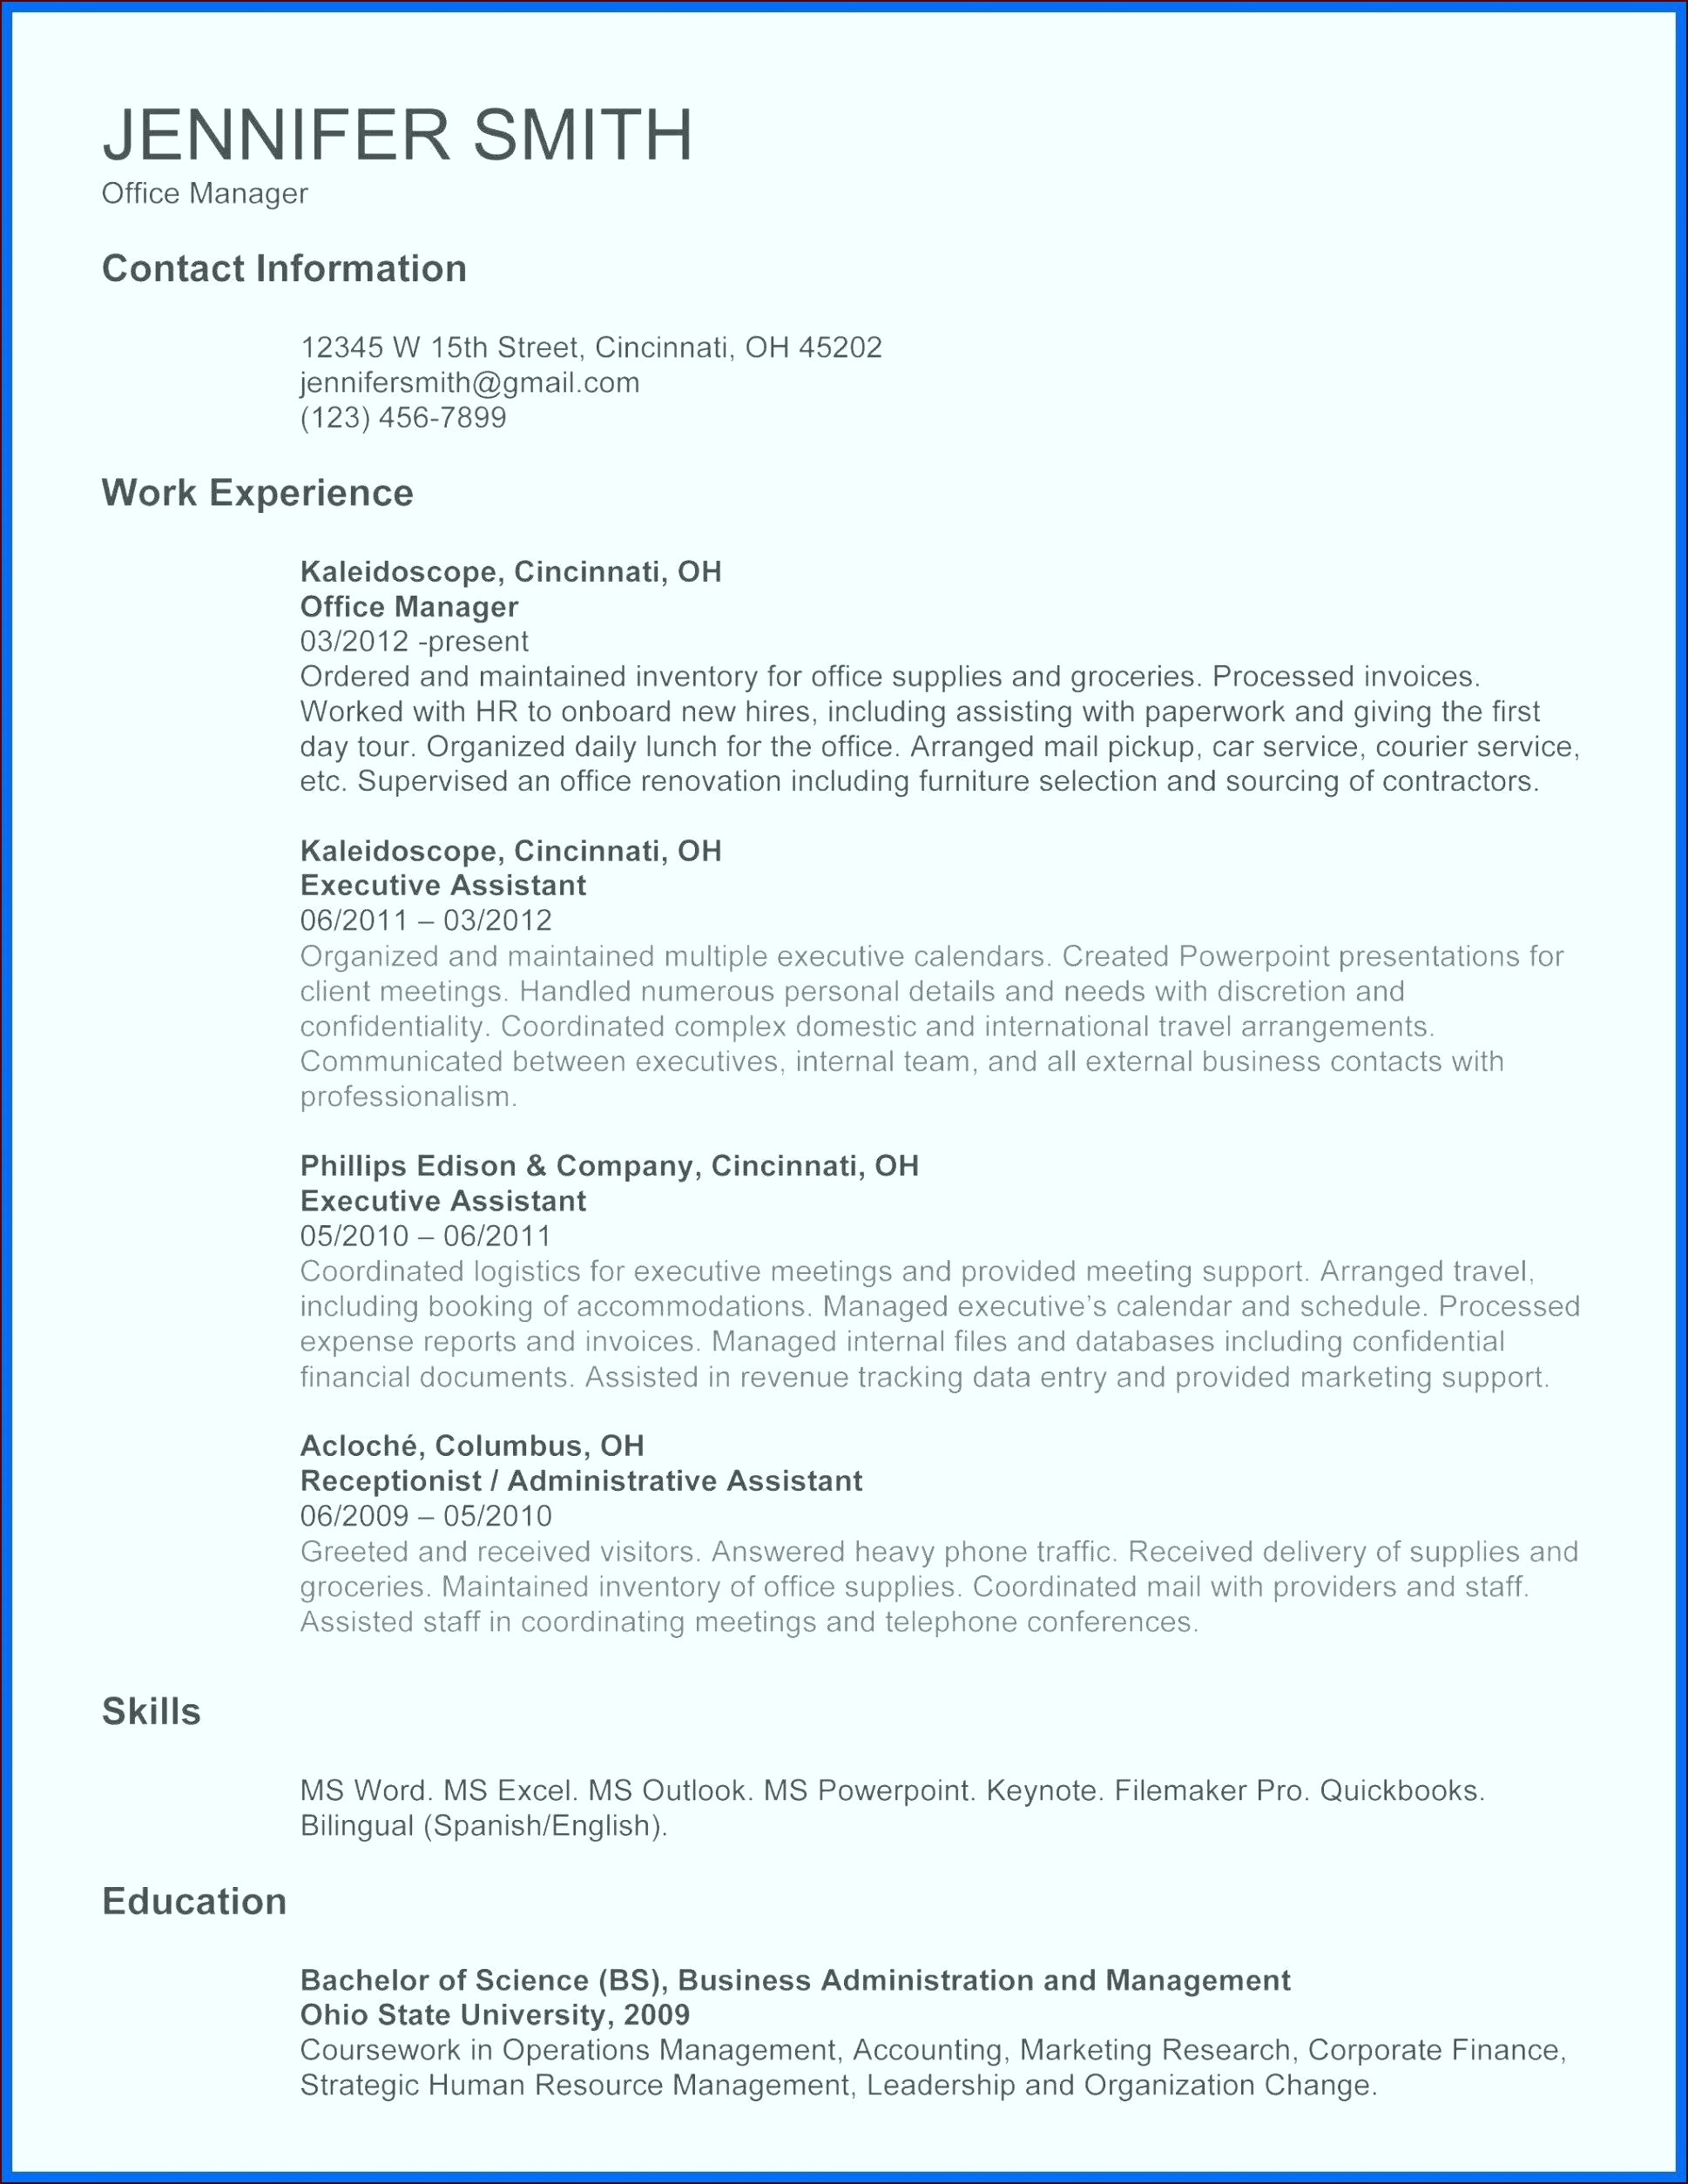 business documents templates new resume template microsoft word salumguilher of business documents templates ryotl